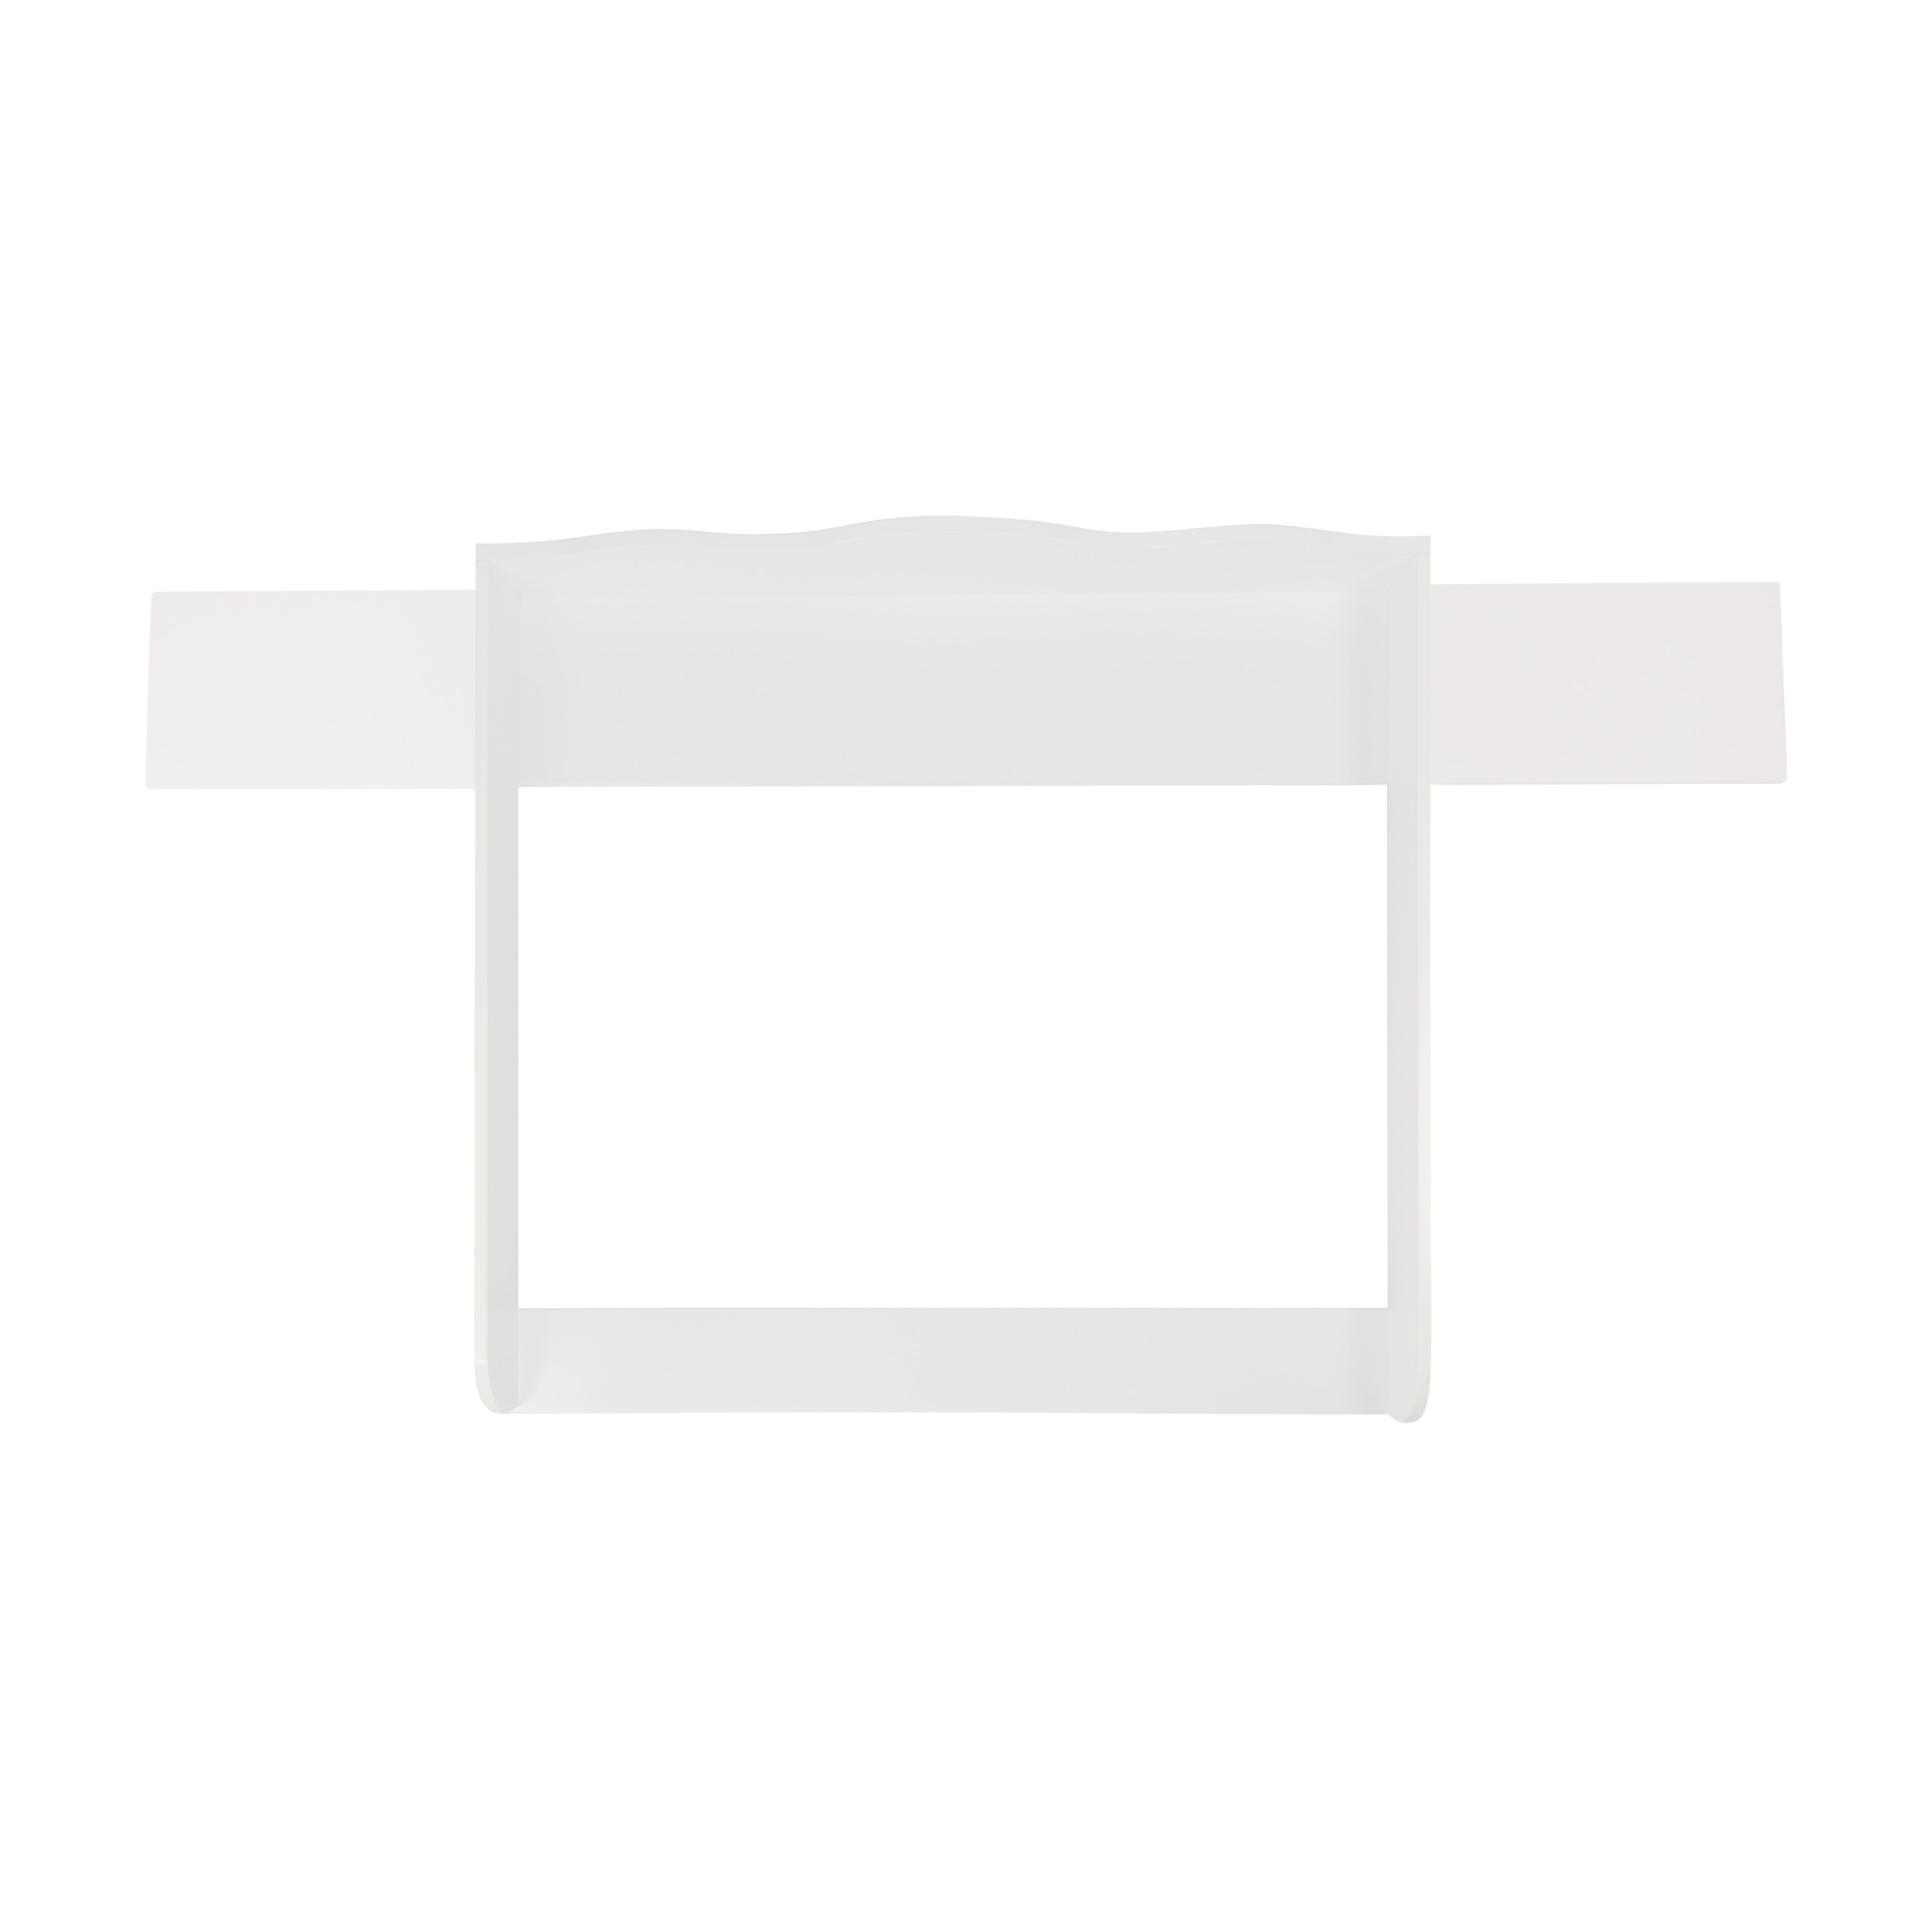 Changing top Emil with 159.5cm wide cover, white, for IKEA Hemnes